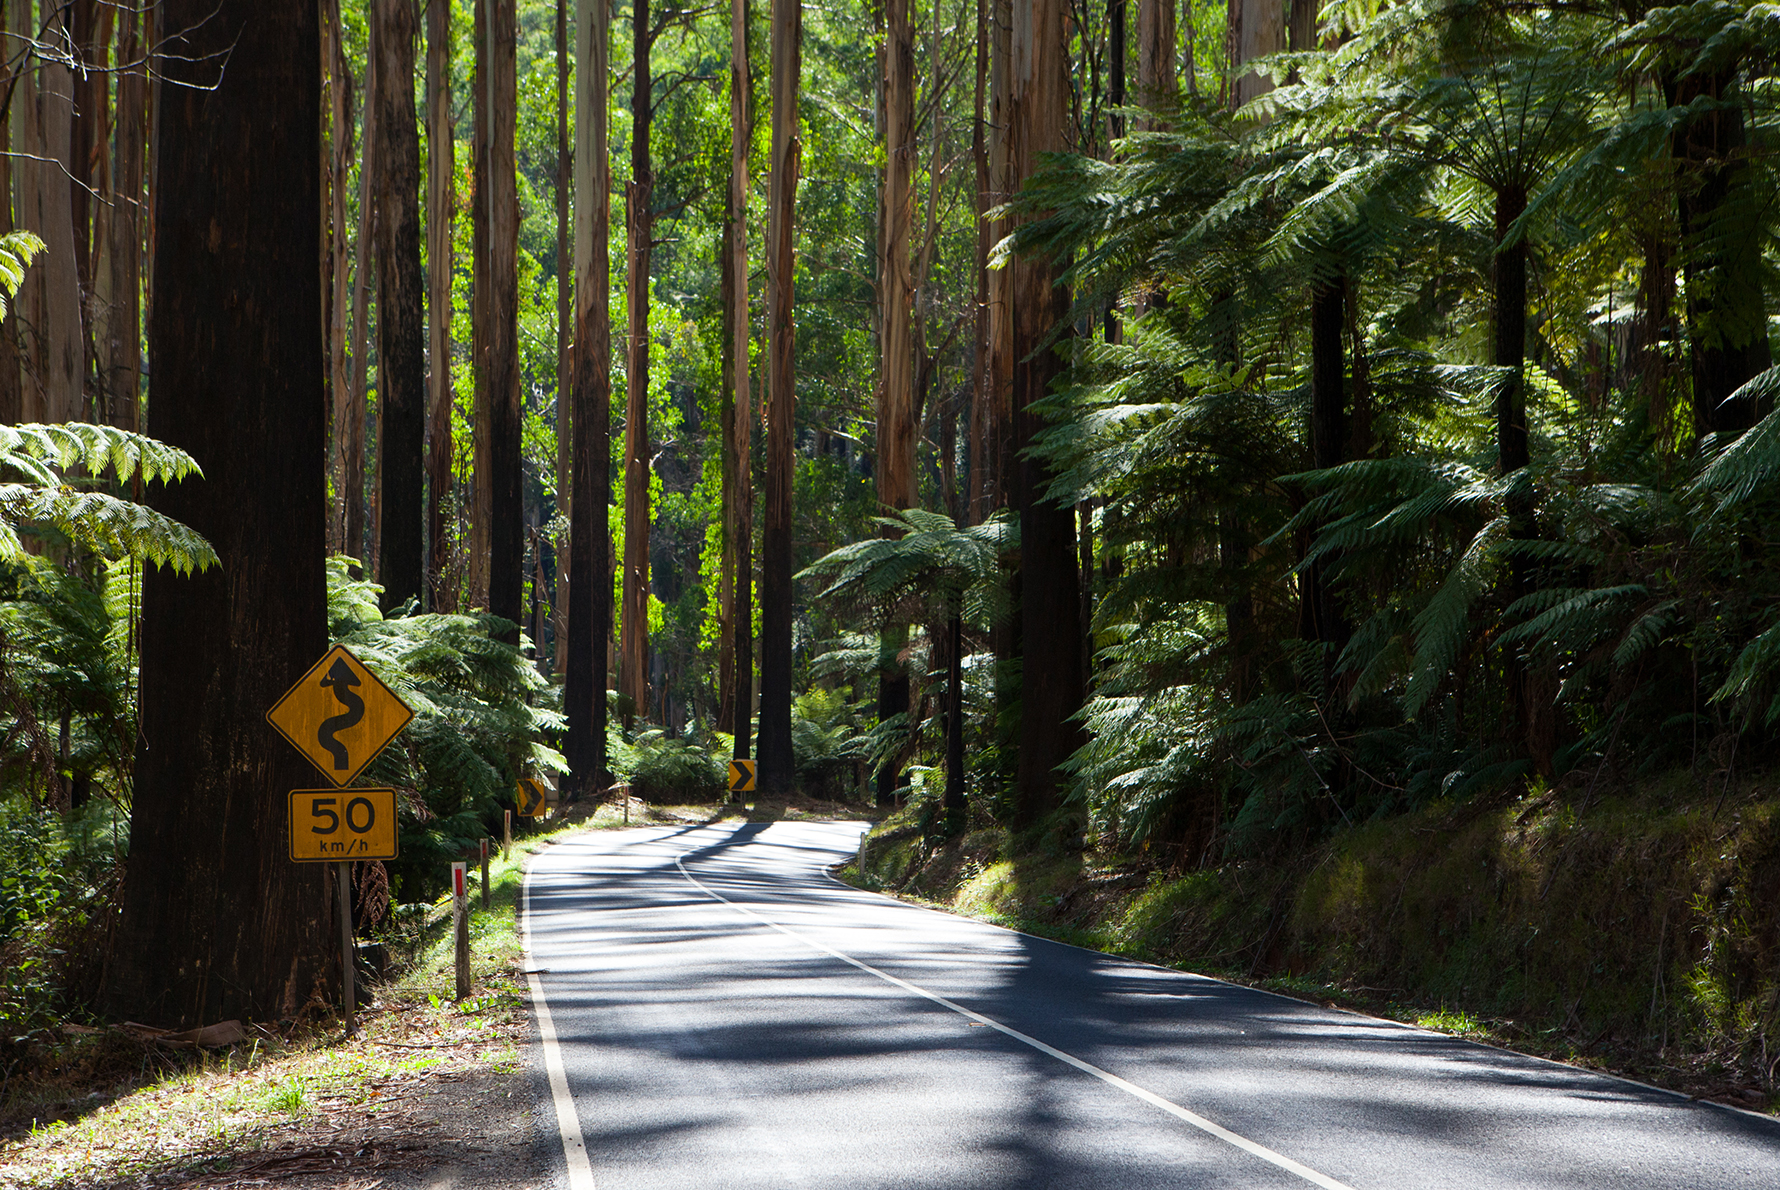 Road to Yarra Valley